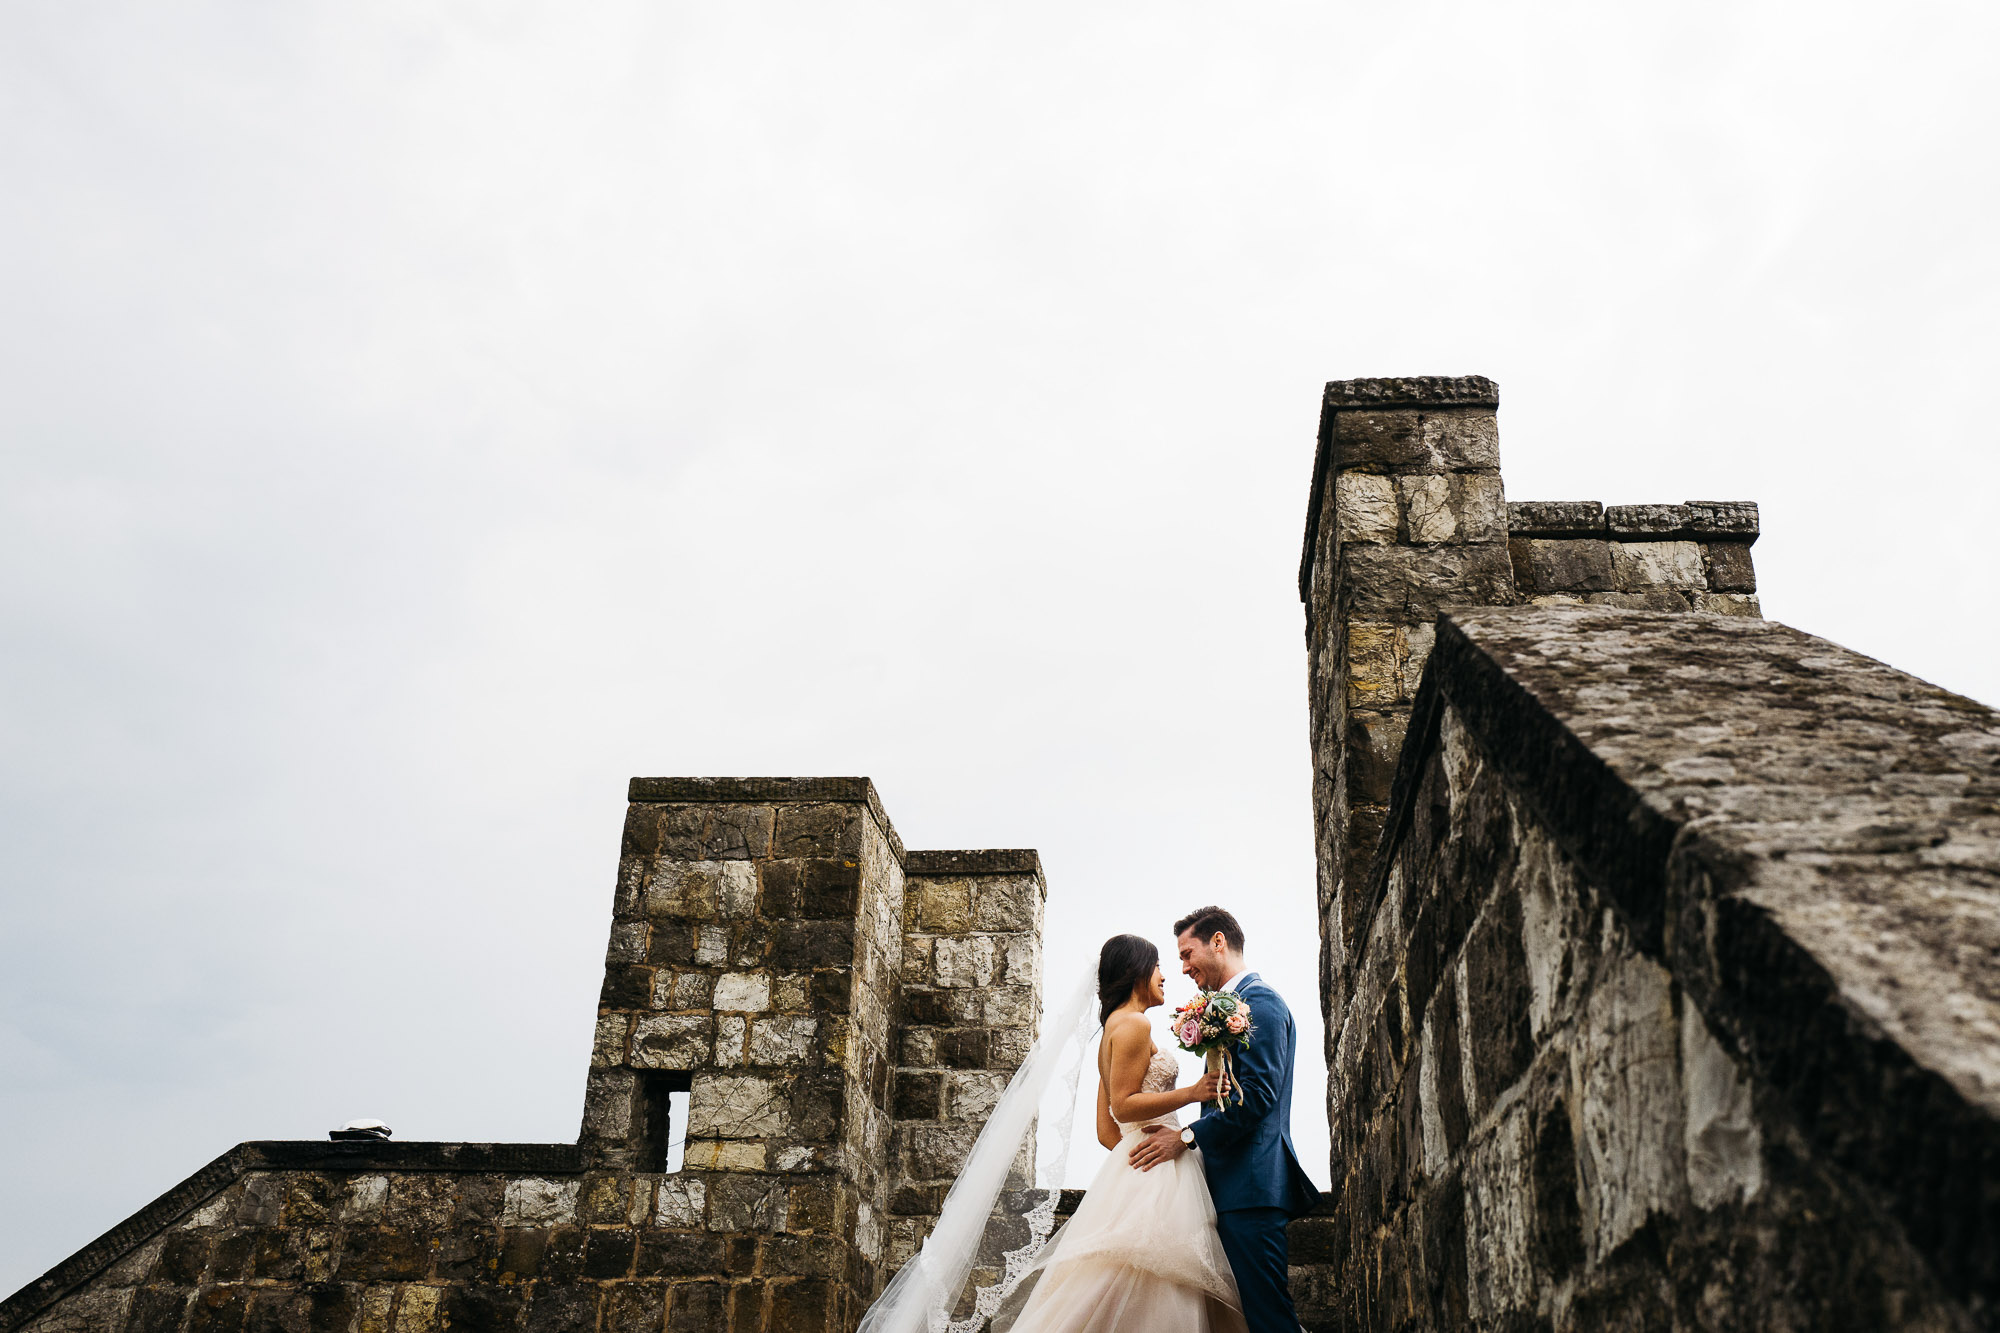 Alex + Julia Wedding Vincigliata Castle 47